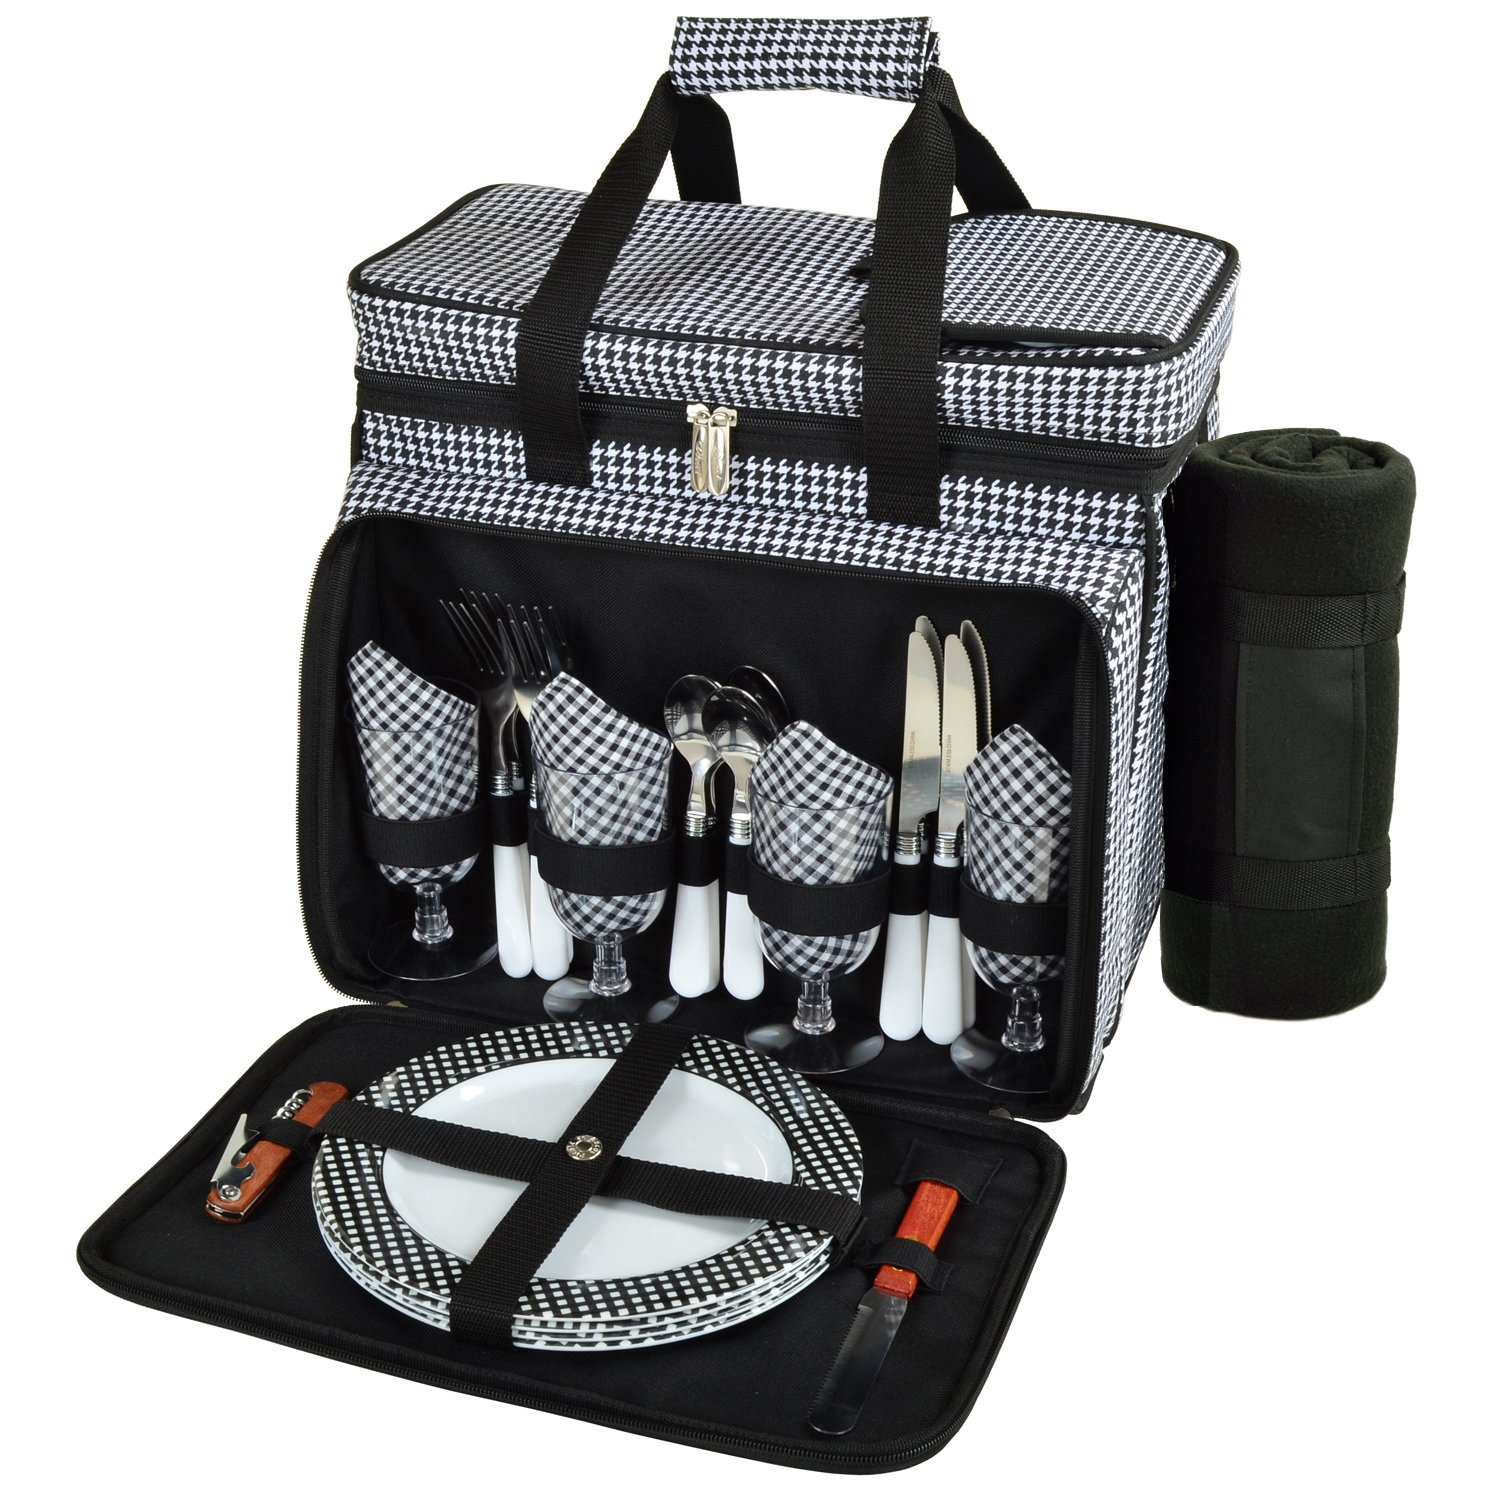 Picnic at Ascot Equipped Insulated Picnic Cooler With Blanket, Black